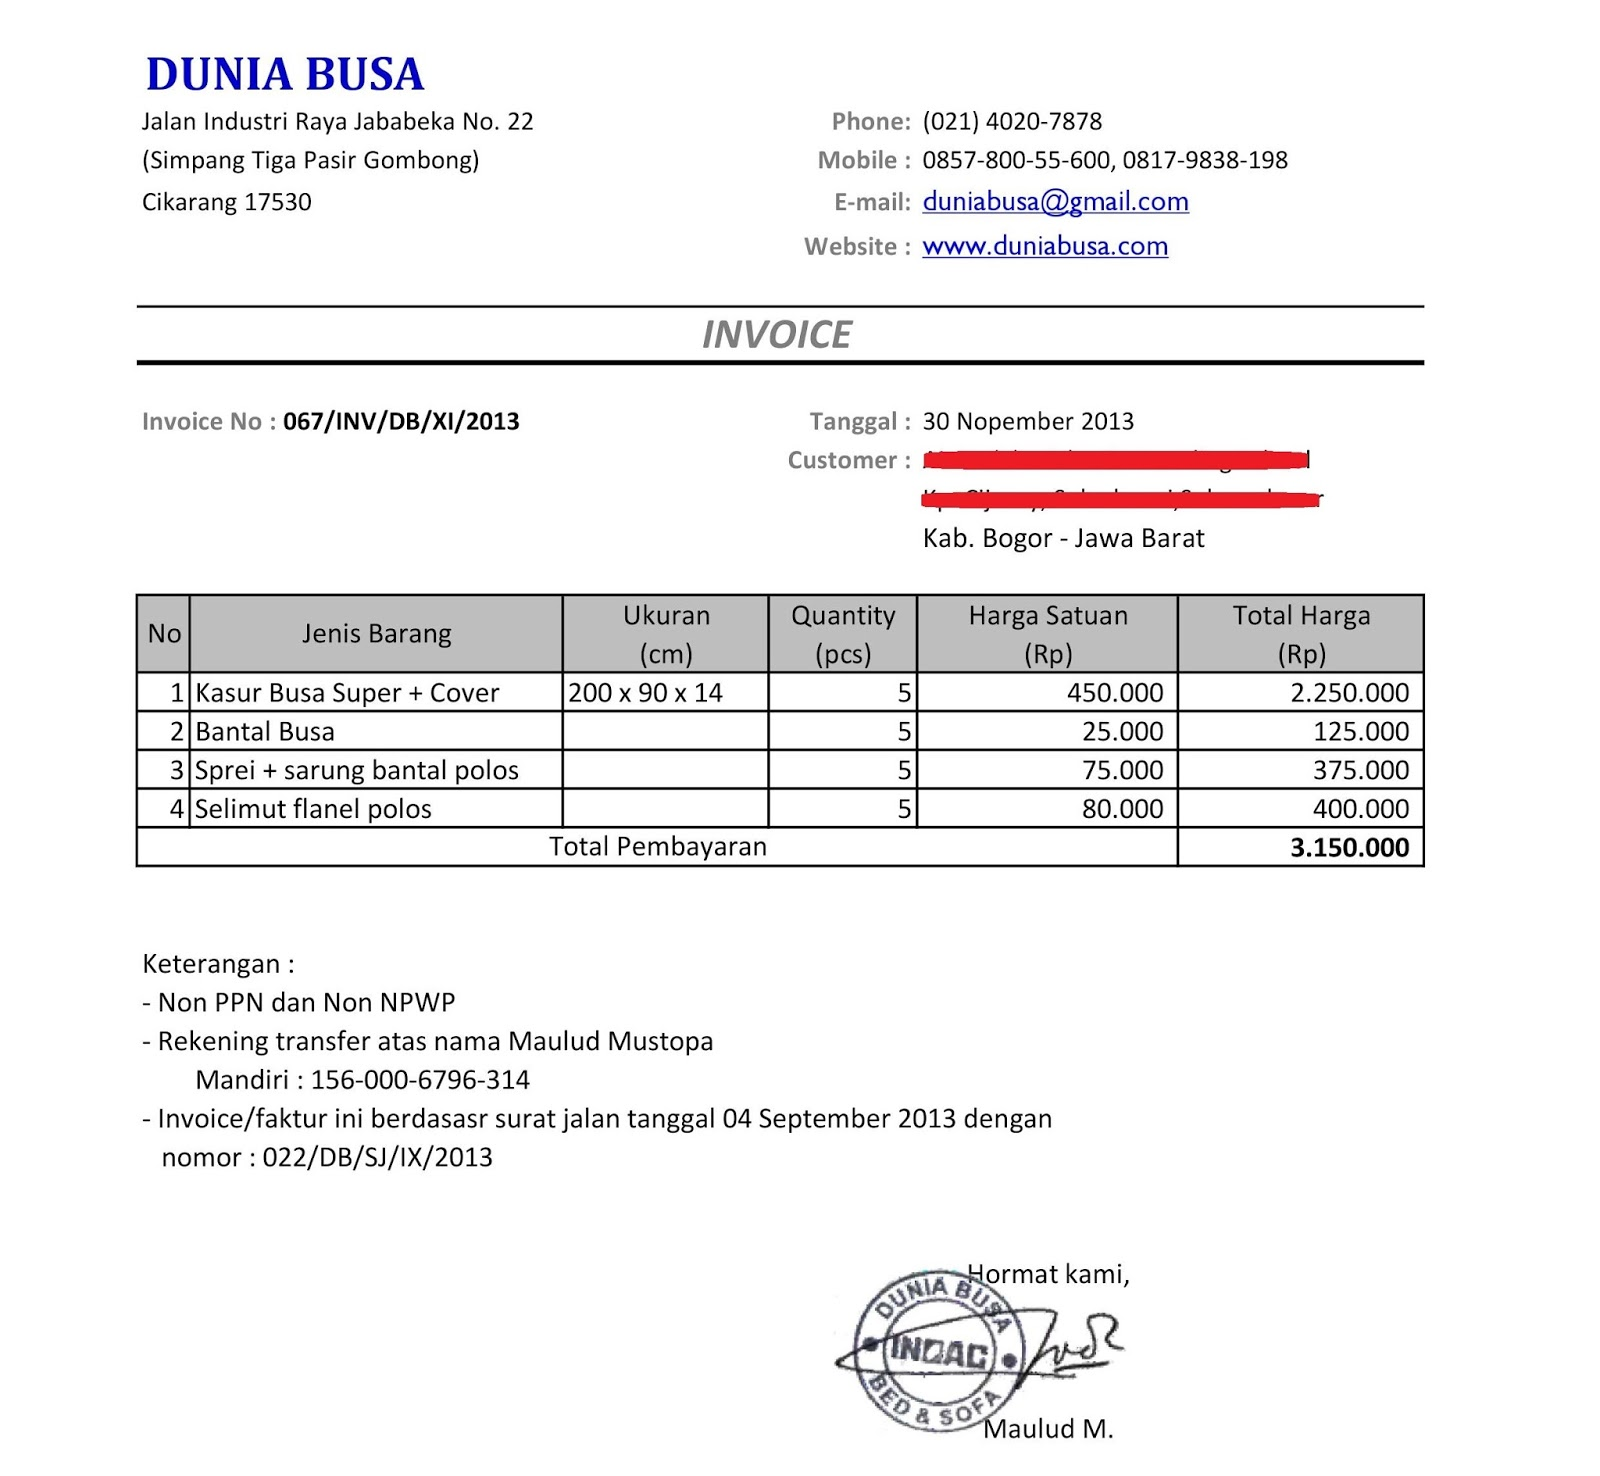 Centralasianshepherdus  Fascinating Free Invoice Online  Create Invoice Online  Invoice Template  With Remarkable Contoh Format Invoice Atau Surat Tagihan  Brankas Arsip  Free Invoice Online With Easy On The Eye Ford Fiesta Invoice Price Also Preform Invoice In Addition Publisher Invoice Template And Commercial Invoice Meaning As Well As Free Invoice Software For Small Business Download Additionally Interest On Late Payment Of Invoices From Sklepco With Centralasianshepherdus  Remarkable Free Invoice Online  Create Invoice Online  Invoice Template  With Easy On The Eye Contoh Format Invoice Atau Surat Tagihan  Brankas Arsip  Free Invoice Online And Fascinating Ford Fiesta Invoice Price Also Preform Invoice In Addition Publisher Invoice Template From Sklepco